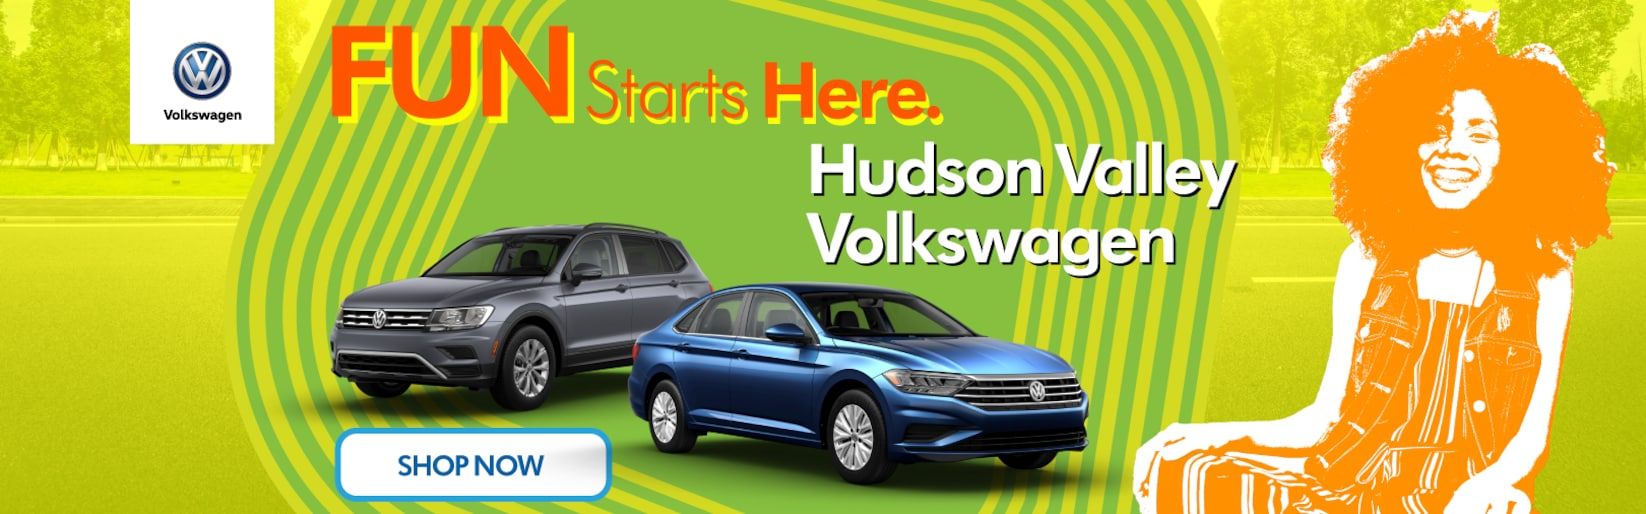 Mt Kisco Volvo >> The Premier Collection | New & Pre-Owned Volkswagen ...